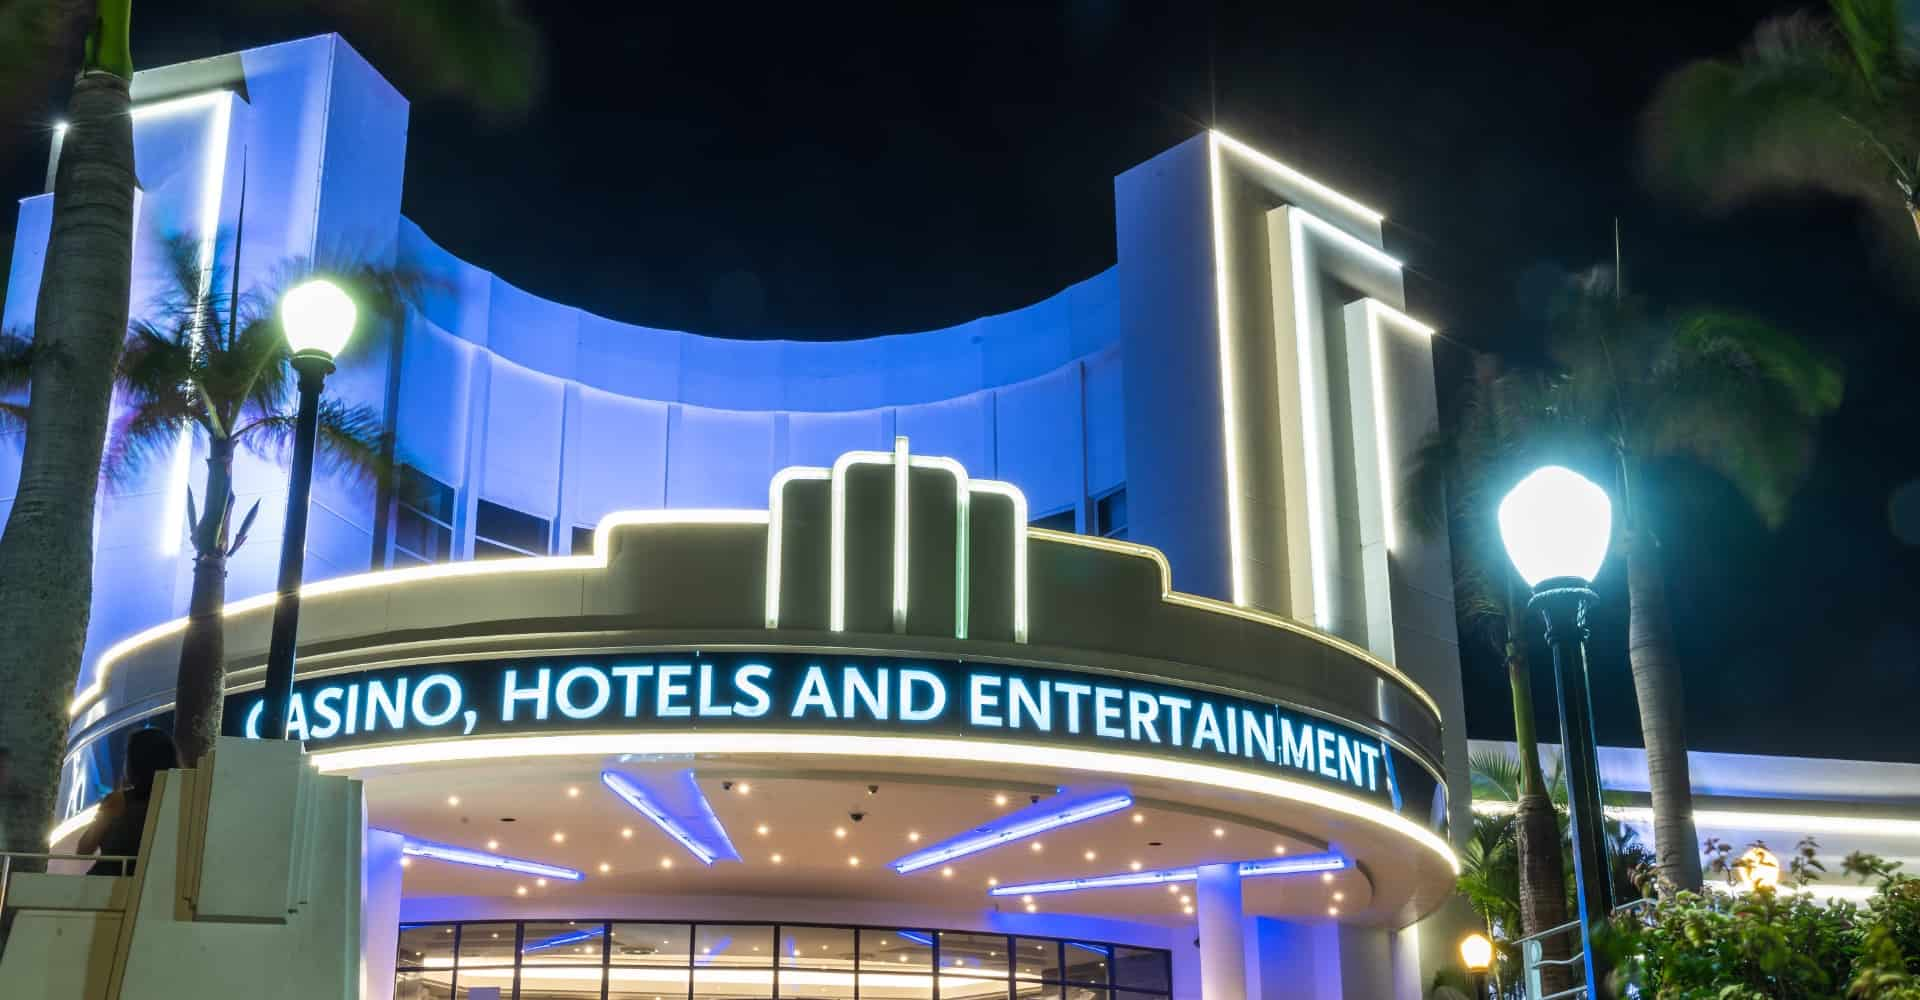 Suncoast Casino's lit up slogan - Casino, Hotels and Entertainment